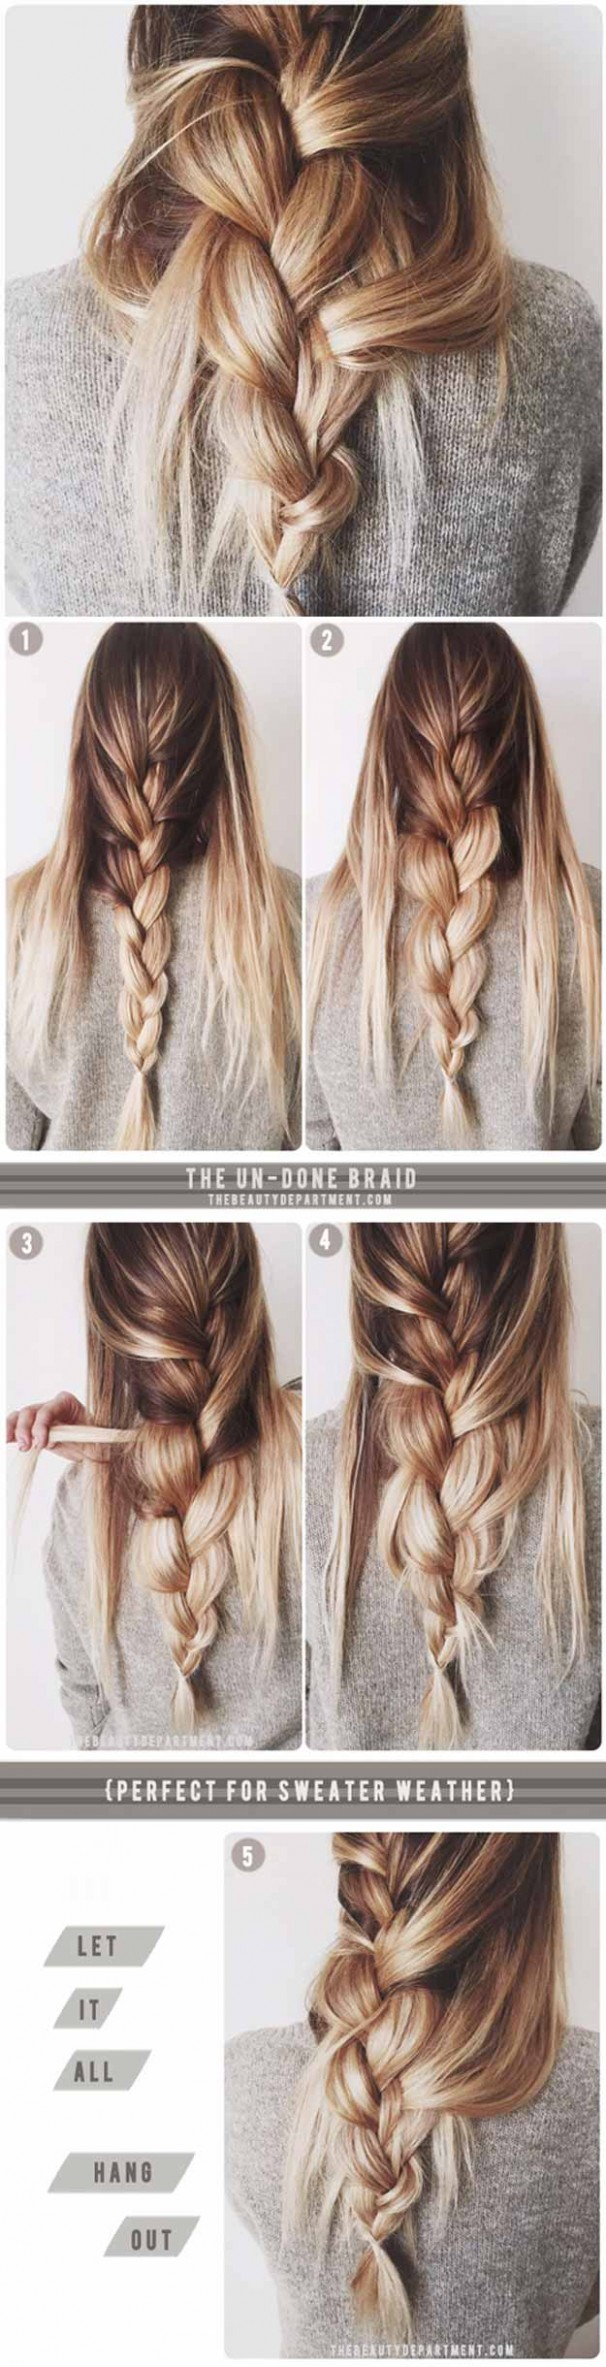 12 Best Hairstyles For Teens The Goddess Long Hairstyles For Teens